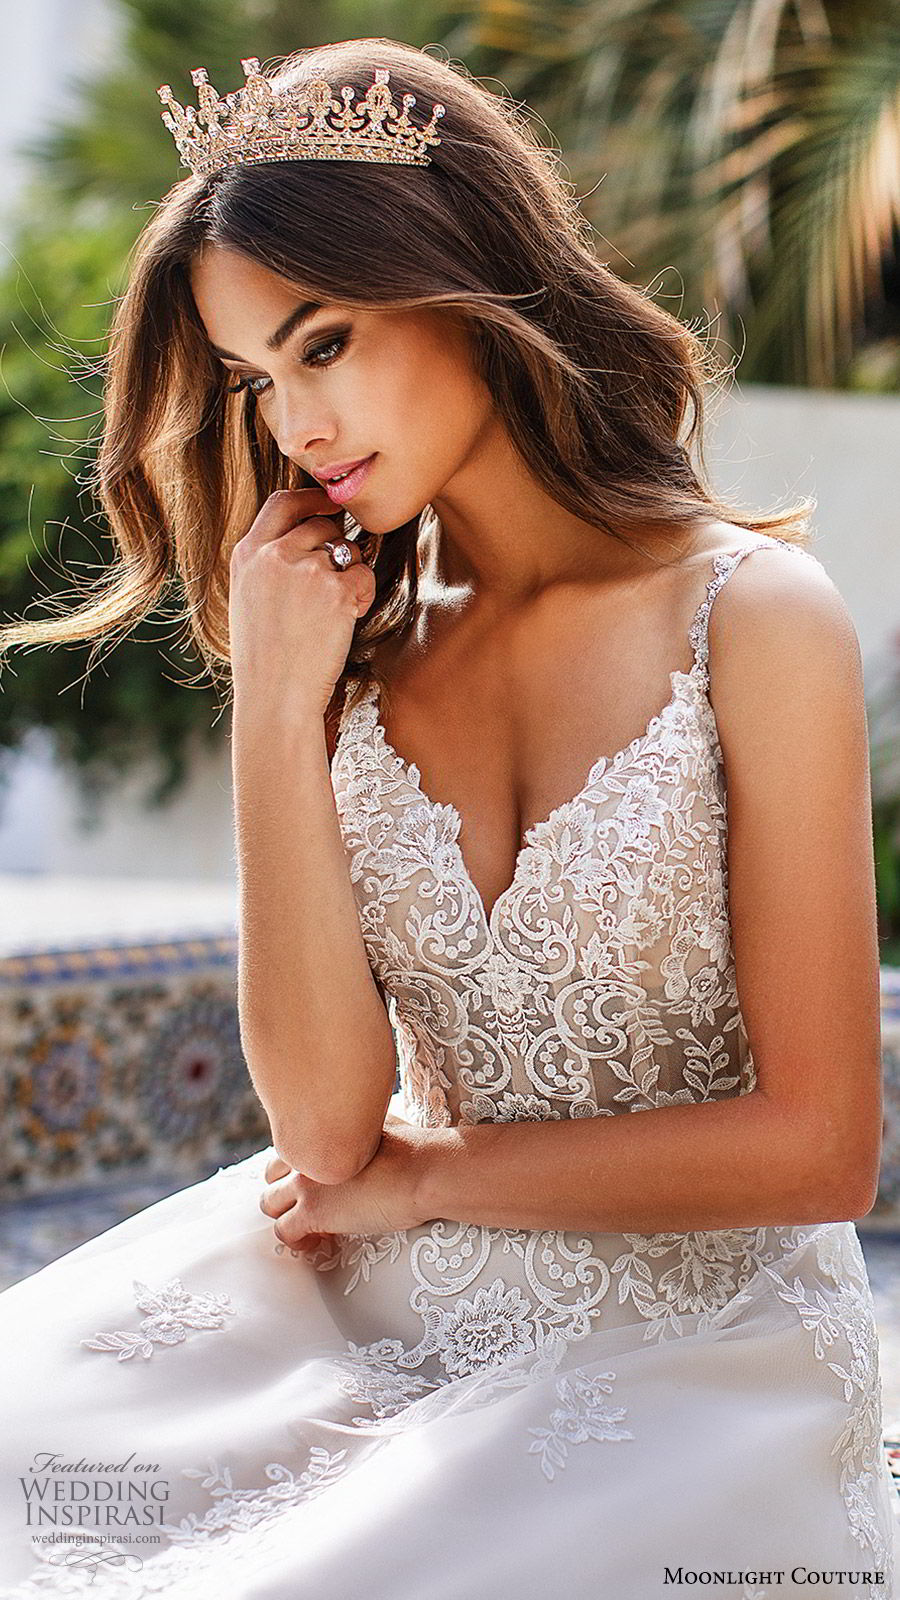 moonlight couture fall 2019 bridal sleeveless beaded straps sweetheart neckline embellished bodice a line ball gown wedding dress (3) romantic elegant princess chapel train low sheer back zv